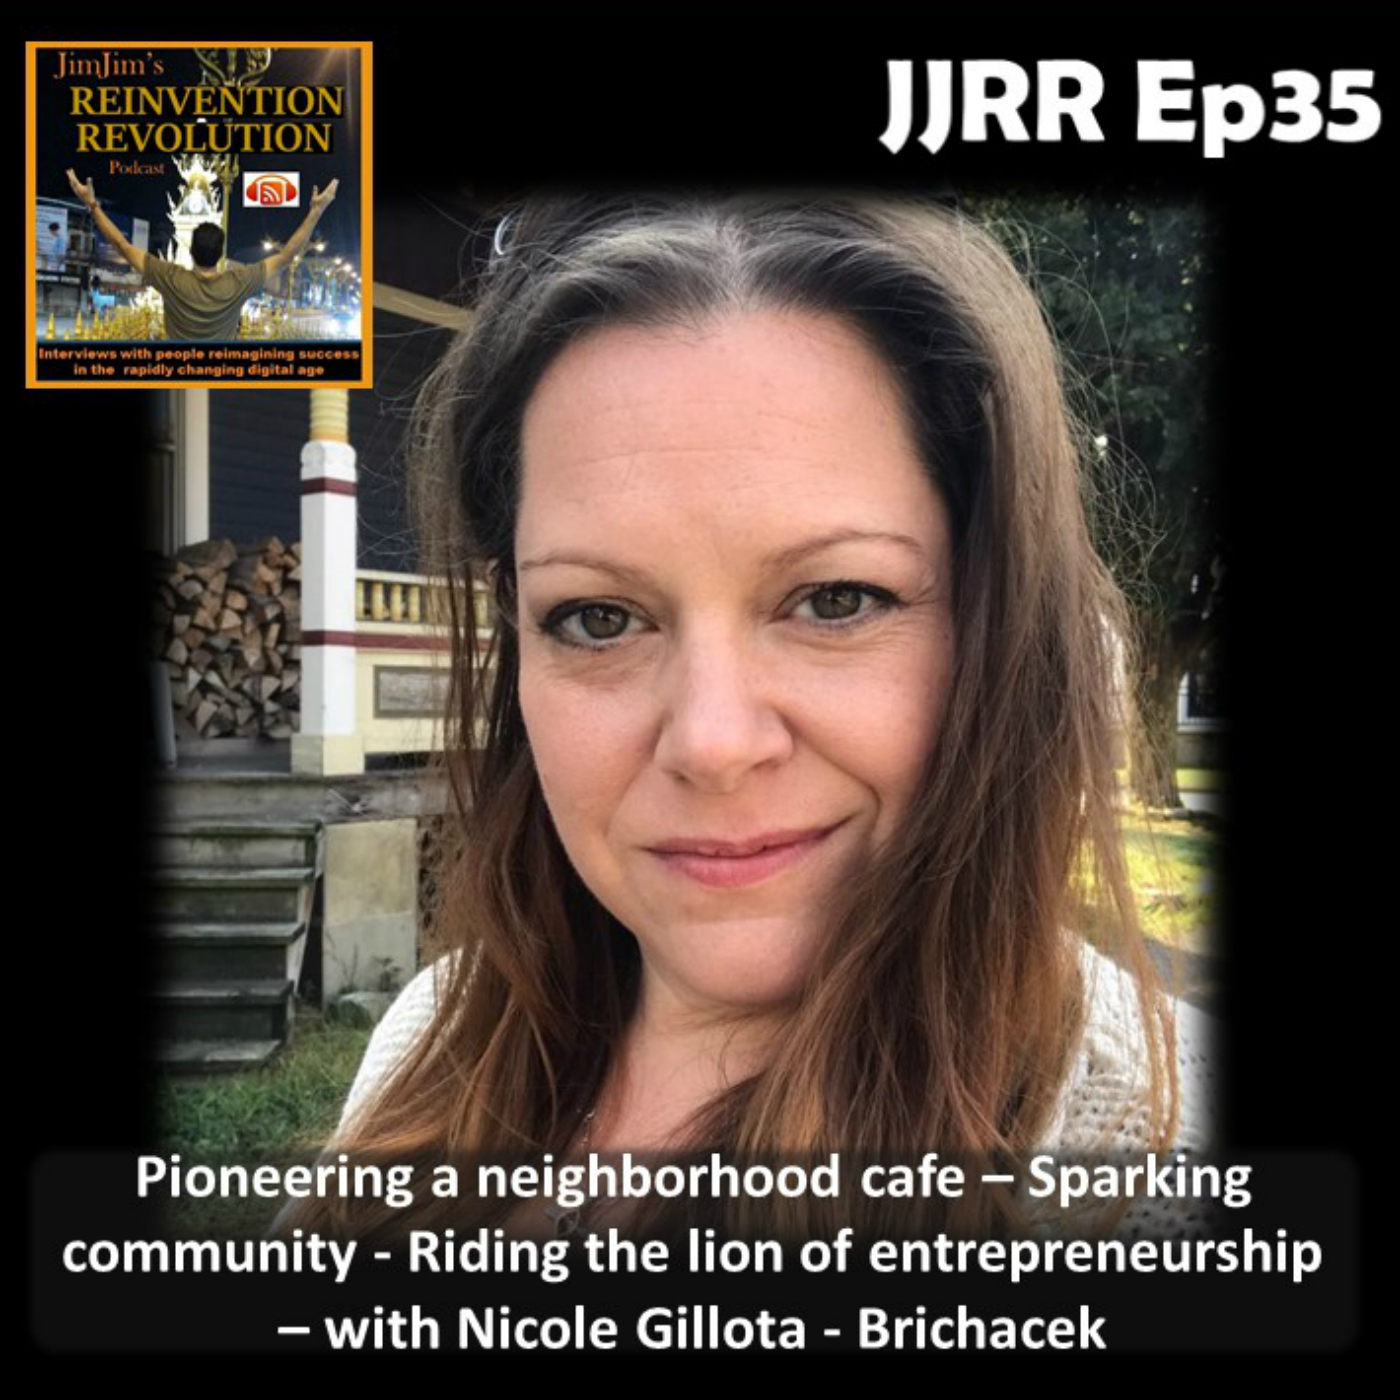 JJRR Ep35 Pioneering a neighborhood cafe – Sparking community – Riding the lion of entrepreneurship – with Nicole Gillota-Brichacek